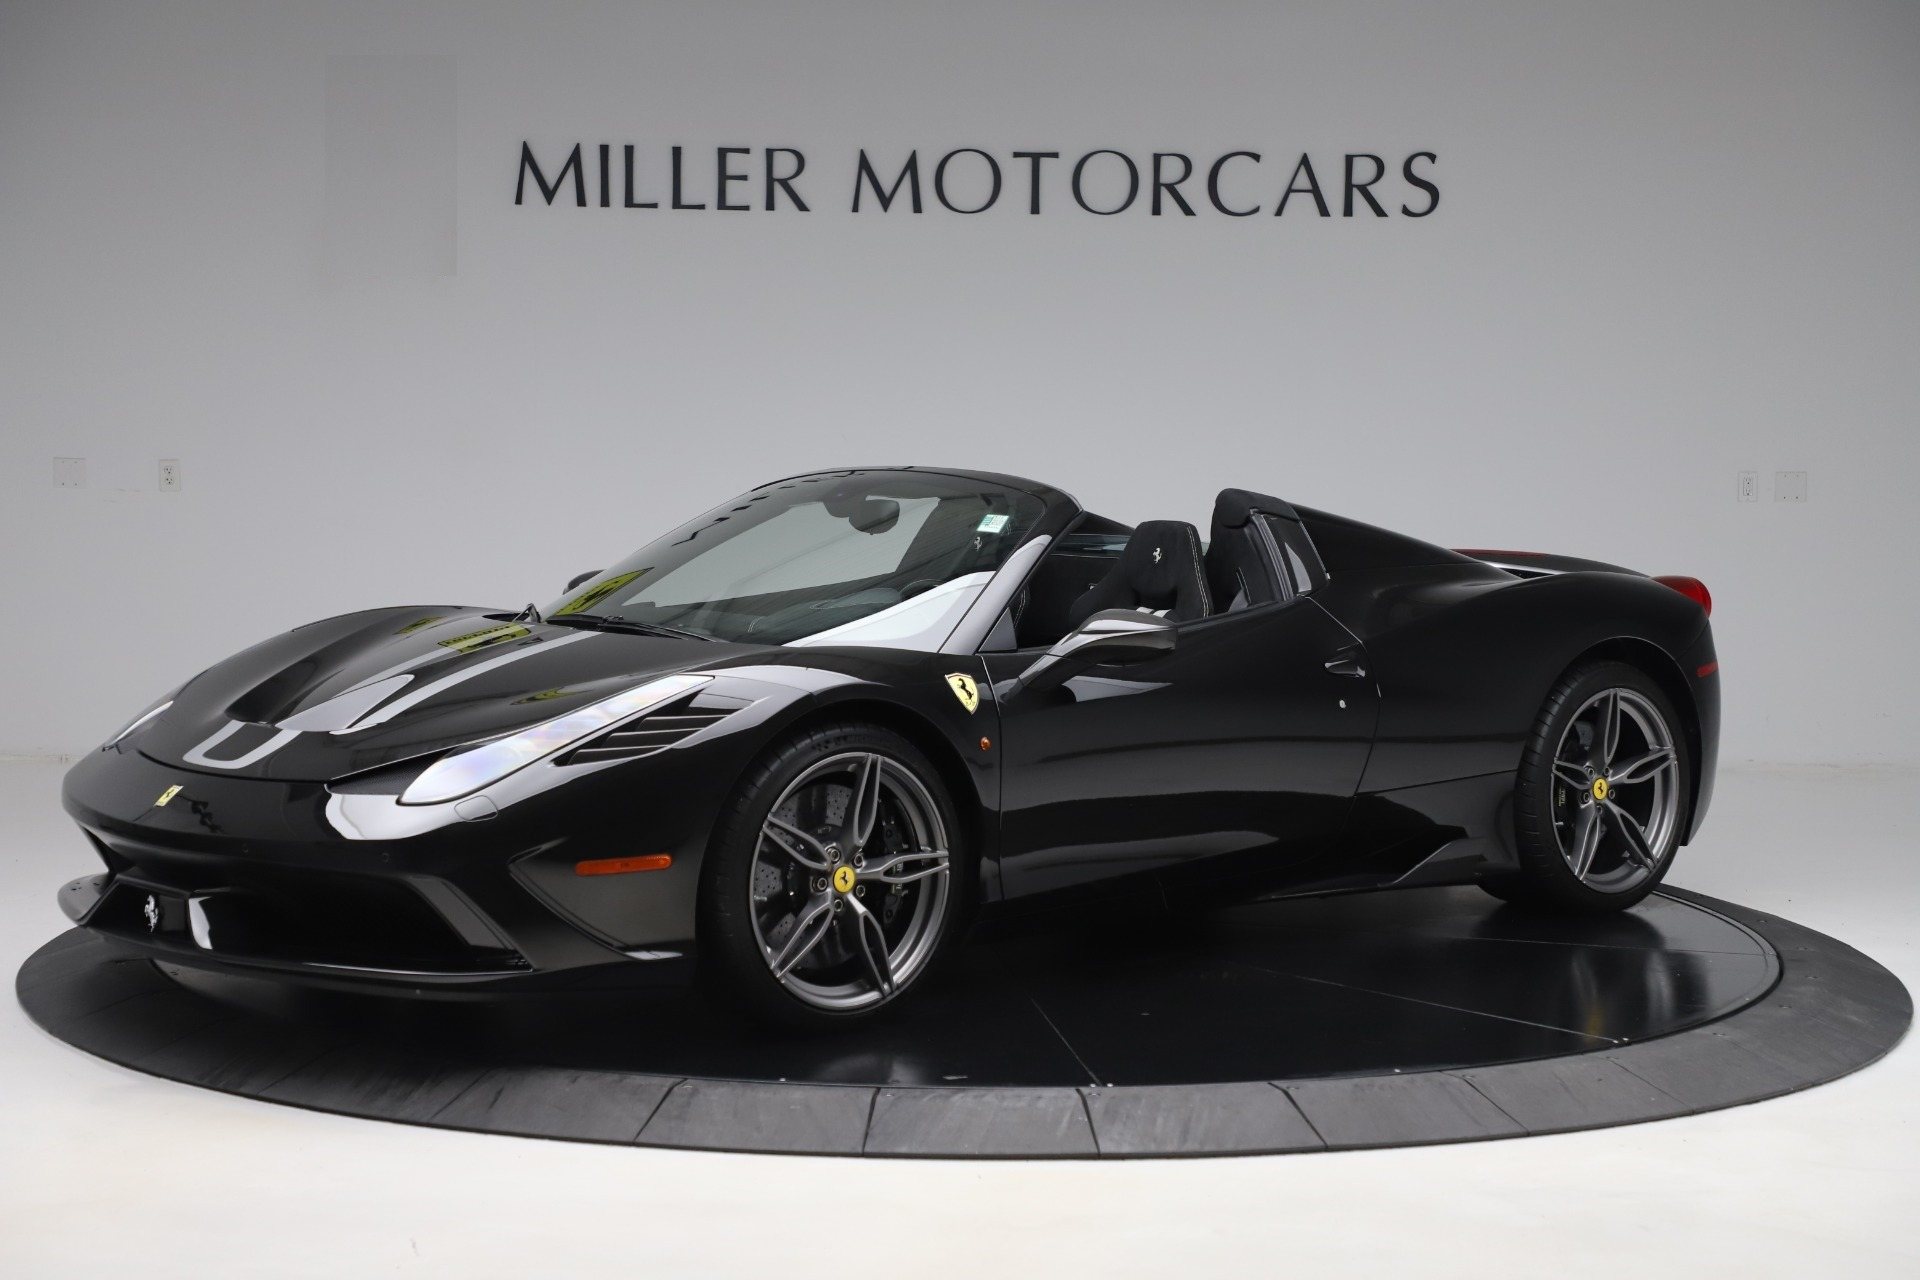 Pre Owned 2015 Ferrari 458 Speciale Aperta For Sale Special Pricing Mclaren Greenwich Stock 4625